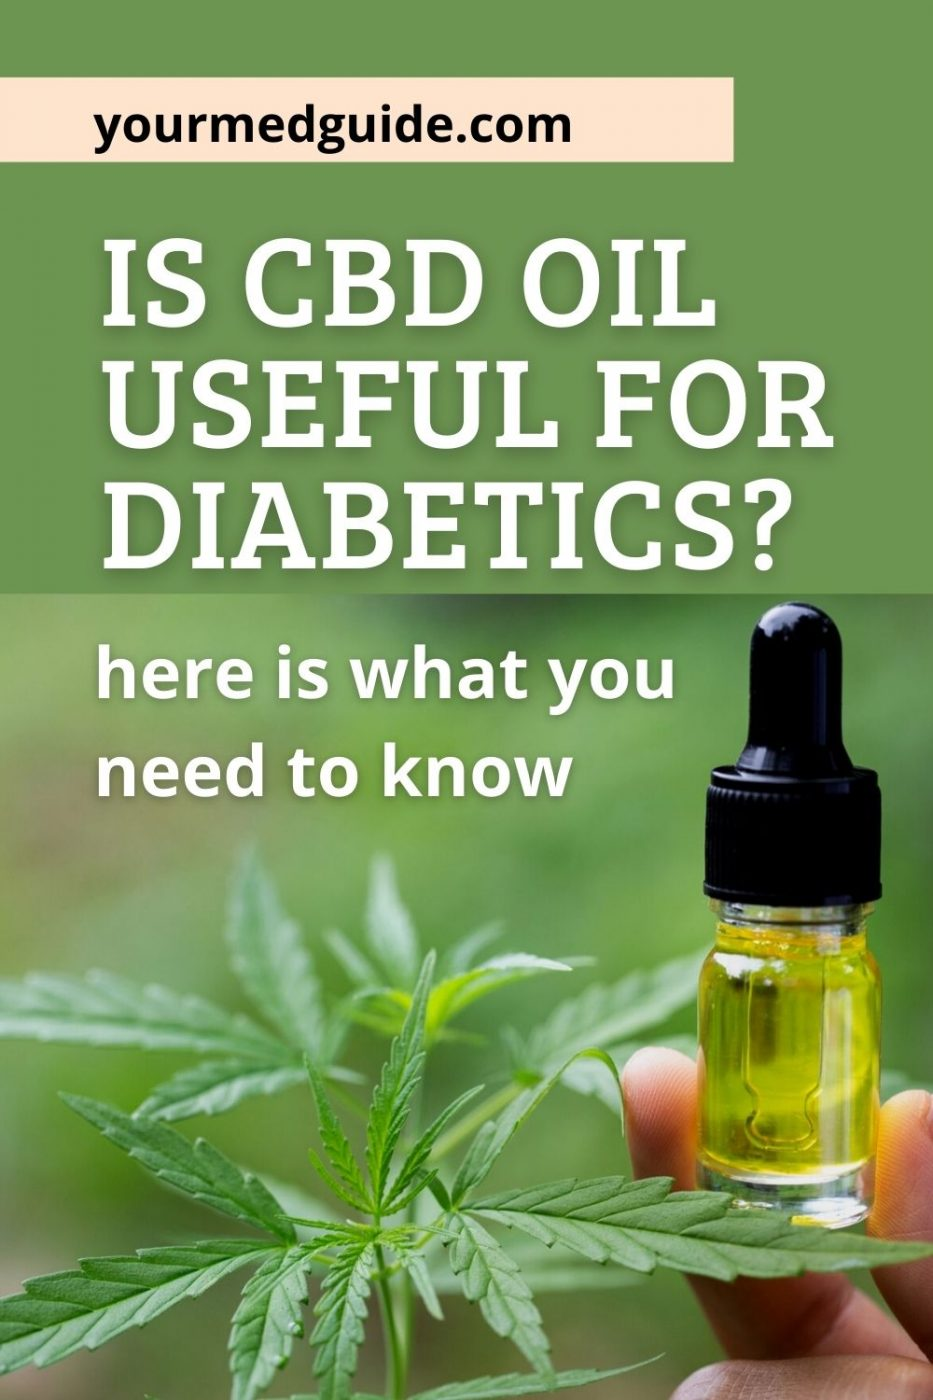 CBD Oil and Diabetes - What you should know